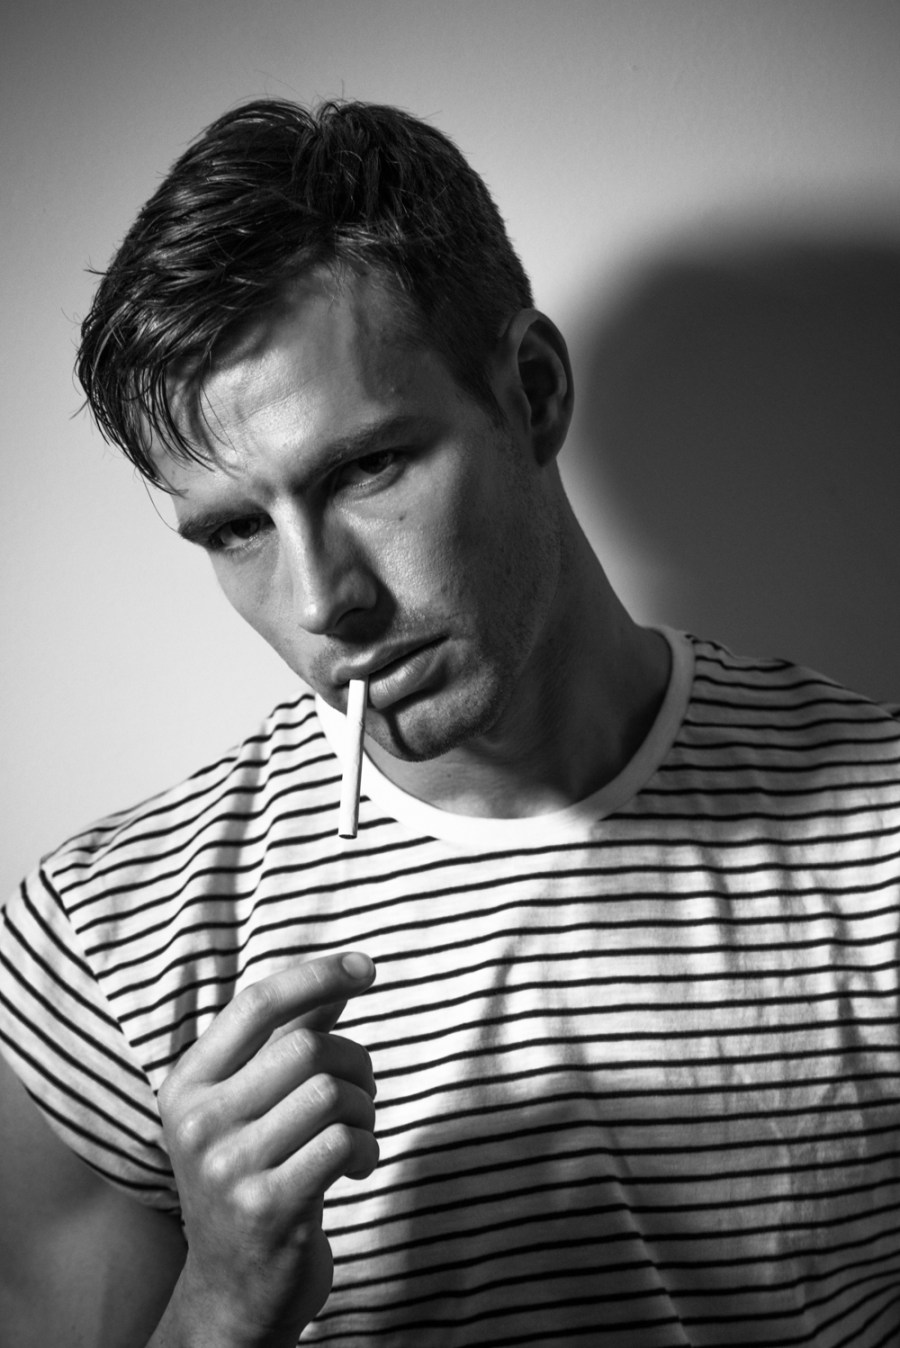 Direct from London, we rrediscovered London's Bad Boy Portrait featuring Nevs Model Chris Baxter and shooting by photographer Issa Yazji. This classic portrait take us to a time capsule where we set on 50's/60's years. The looks of Chris helps us to remind that classic styles never never will change. Some of you might be smoke sensitive, but when is come cigarettes is only an accessory.